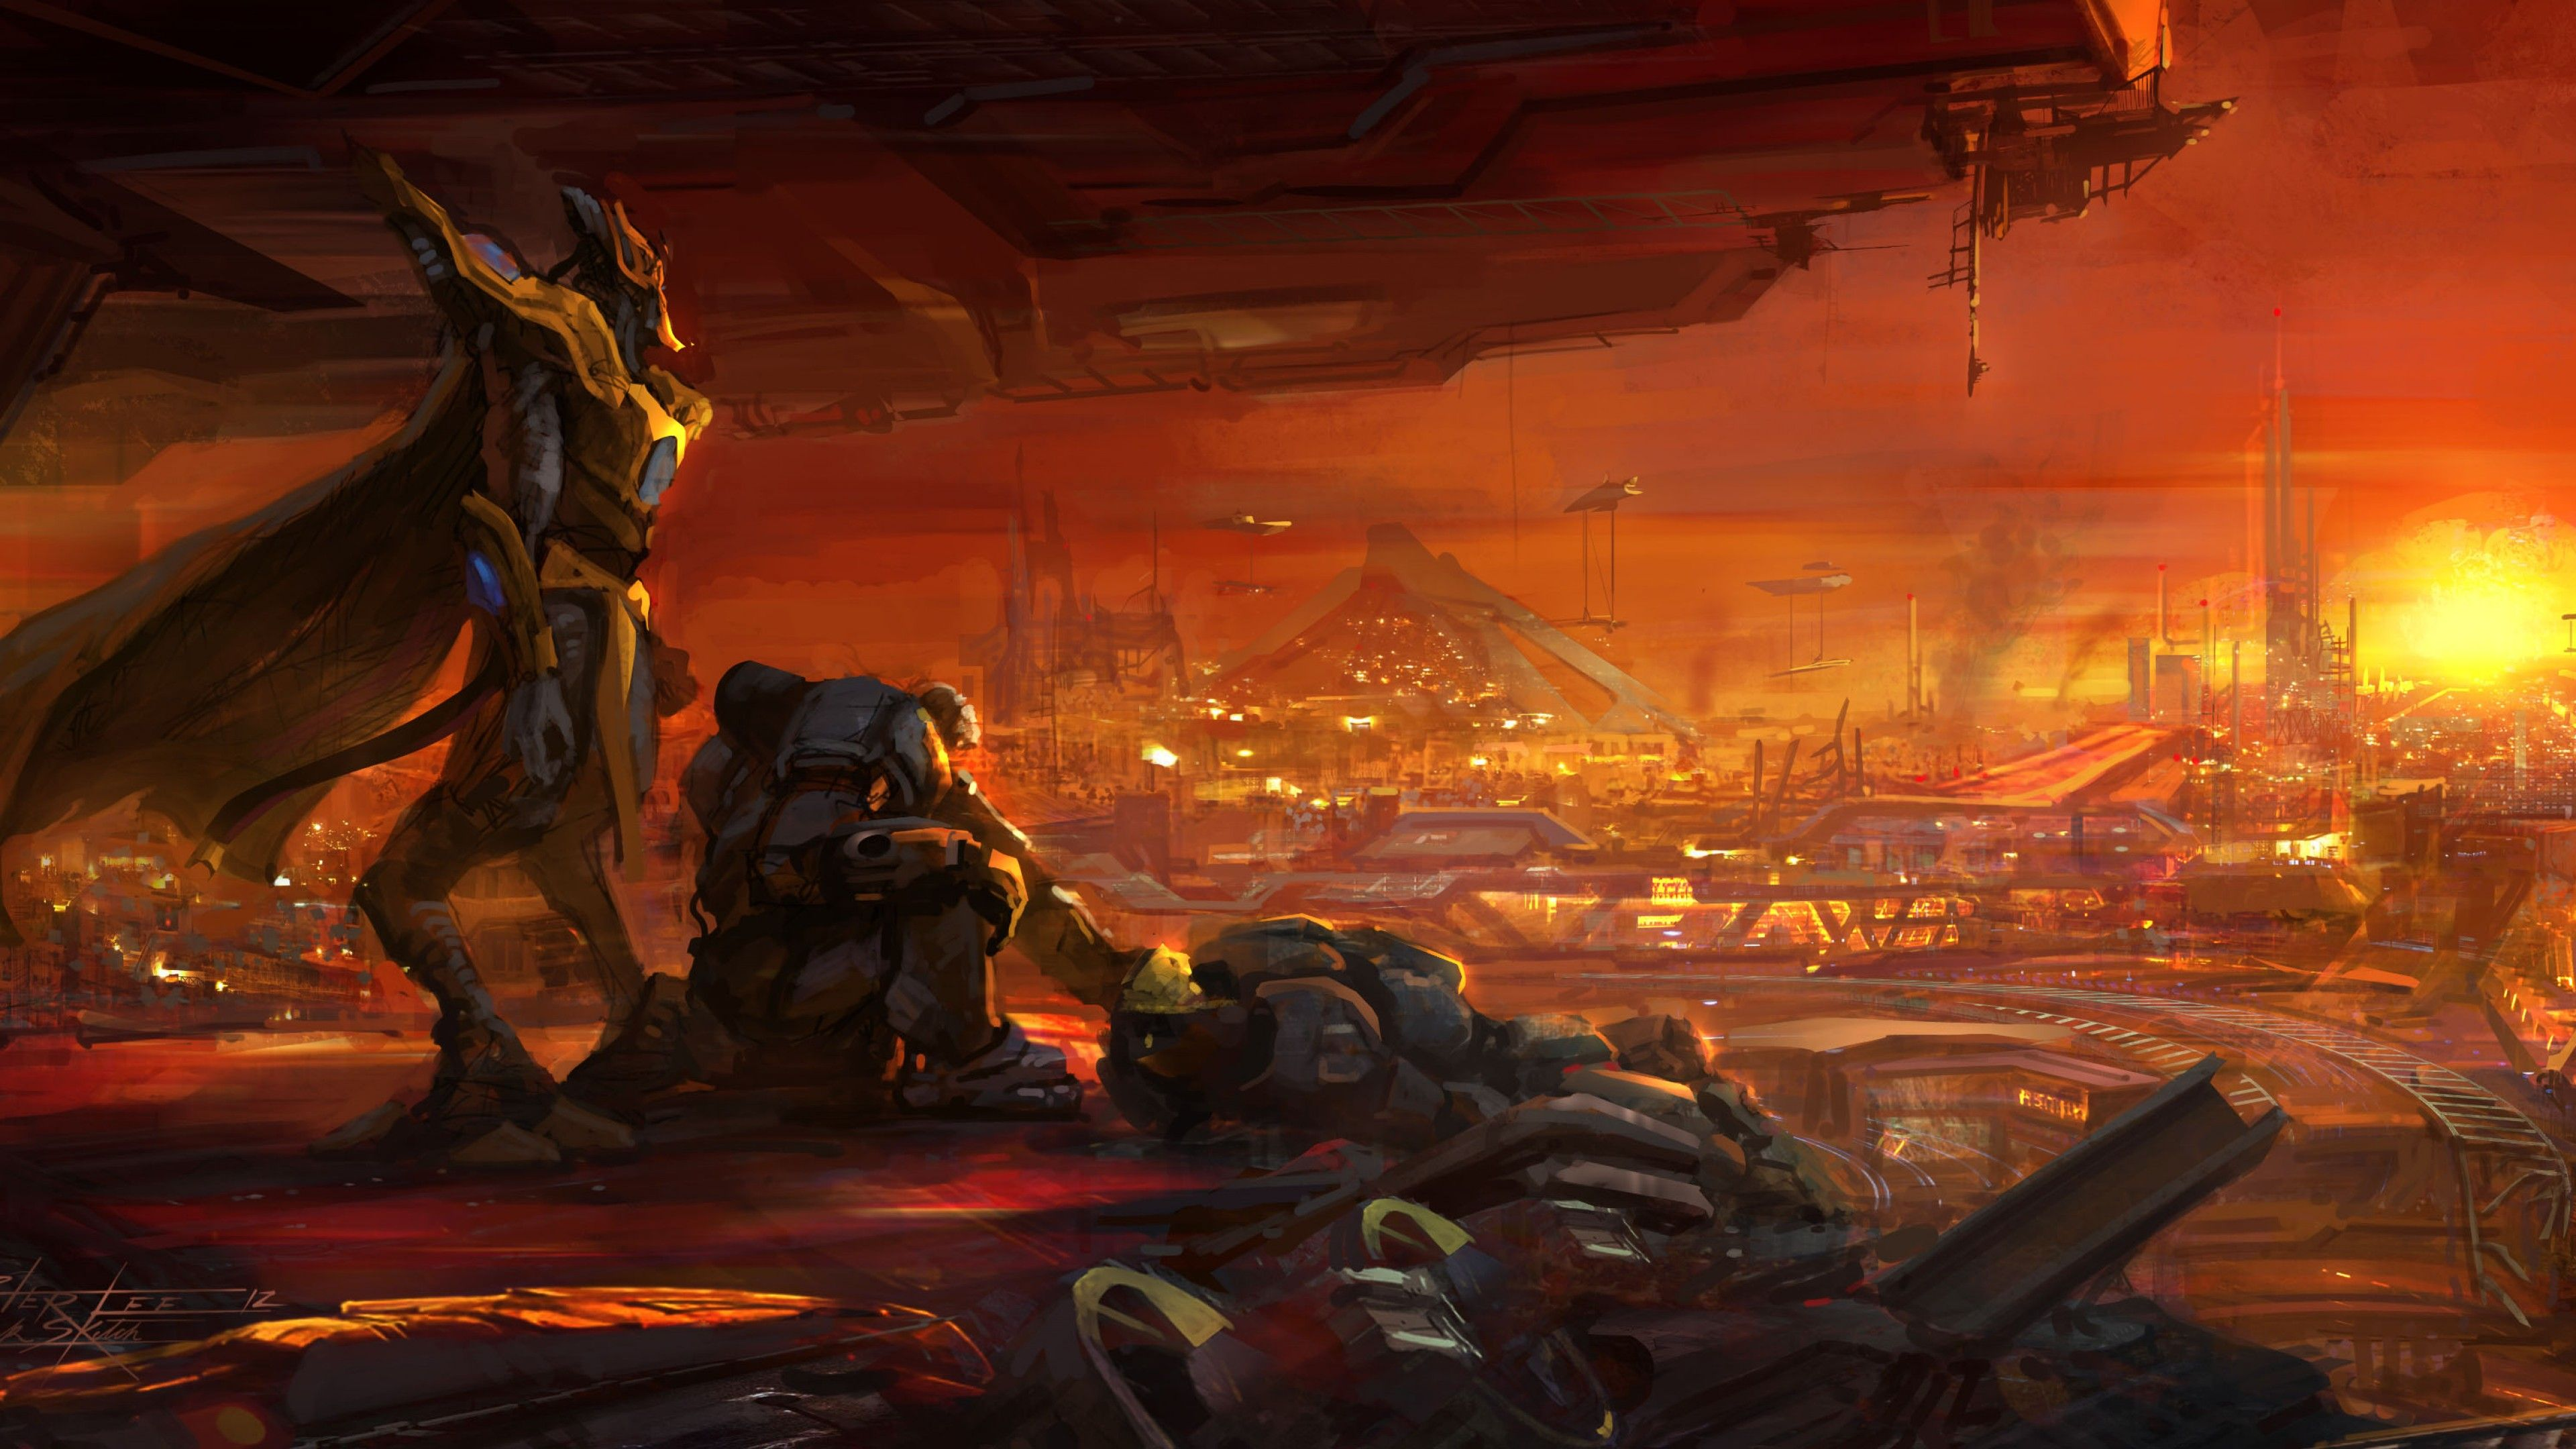 3840x2160 Wallpaper StarCraft 2: Legacy of the Void, Best Game, sci-fi, PC ...